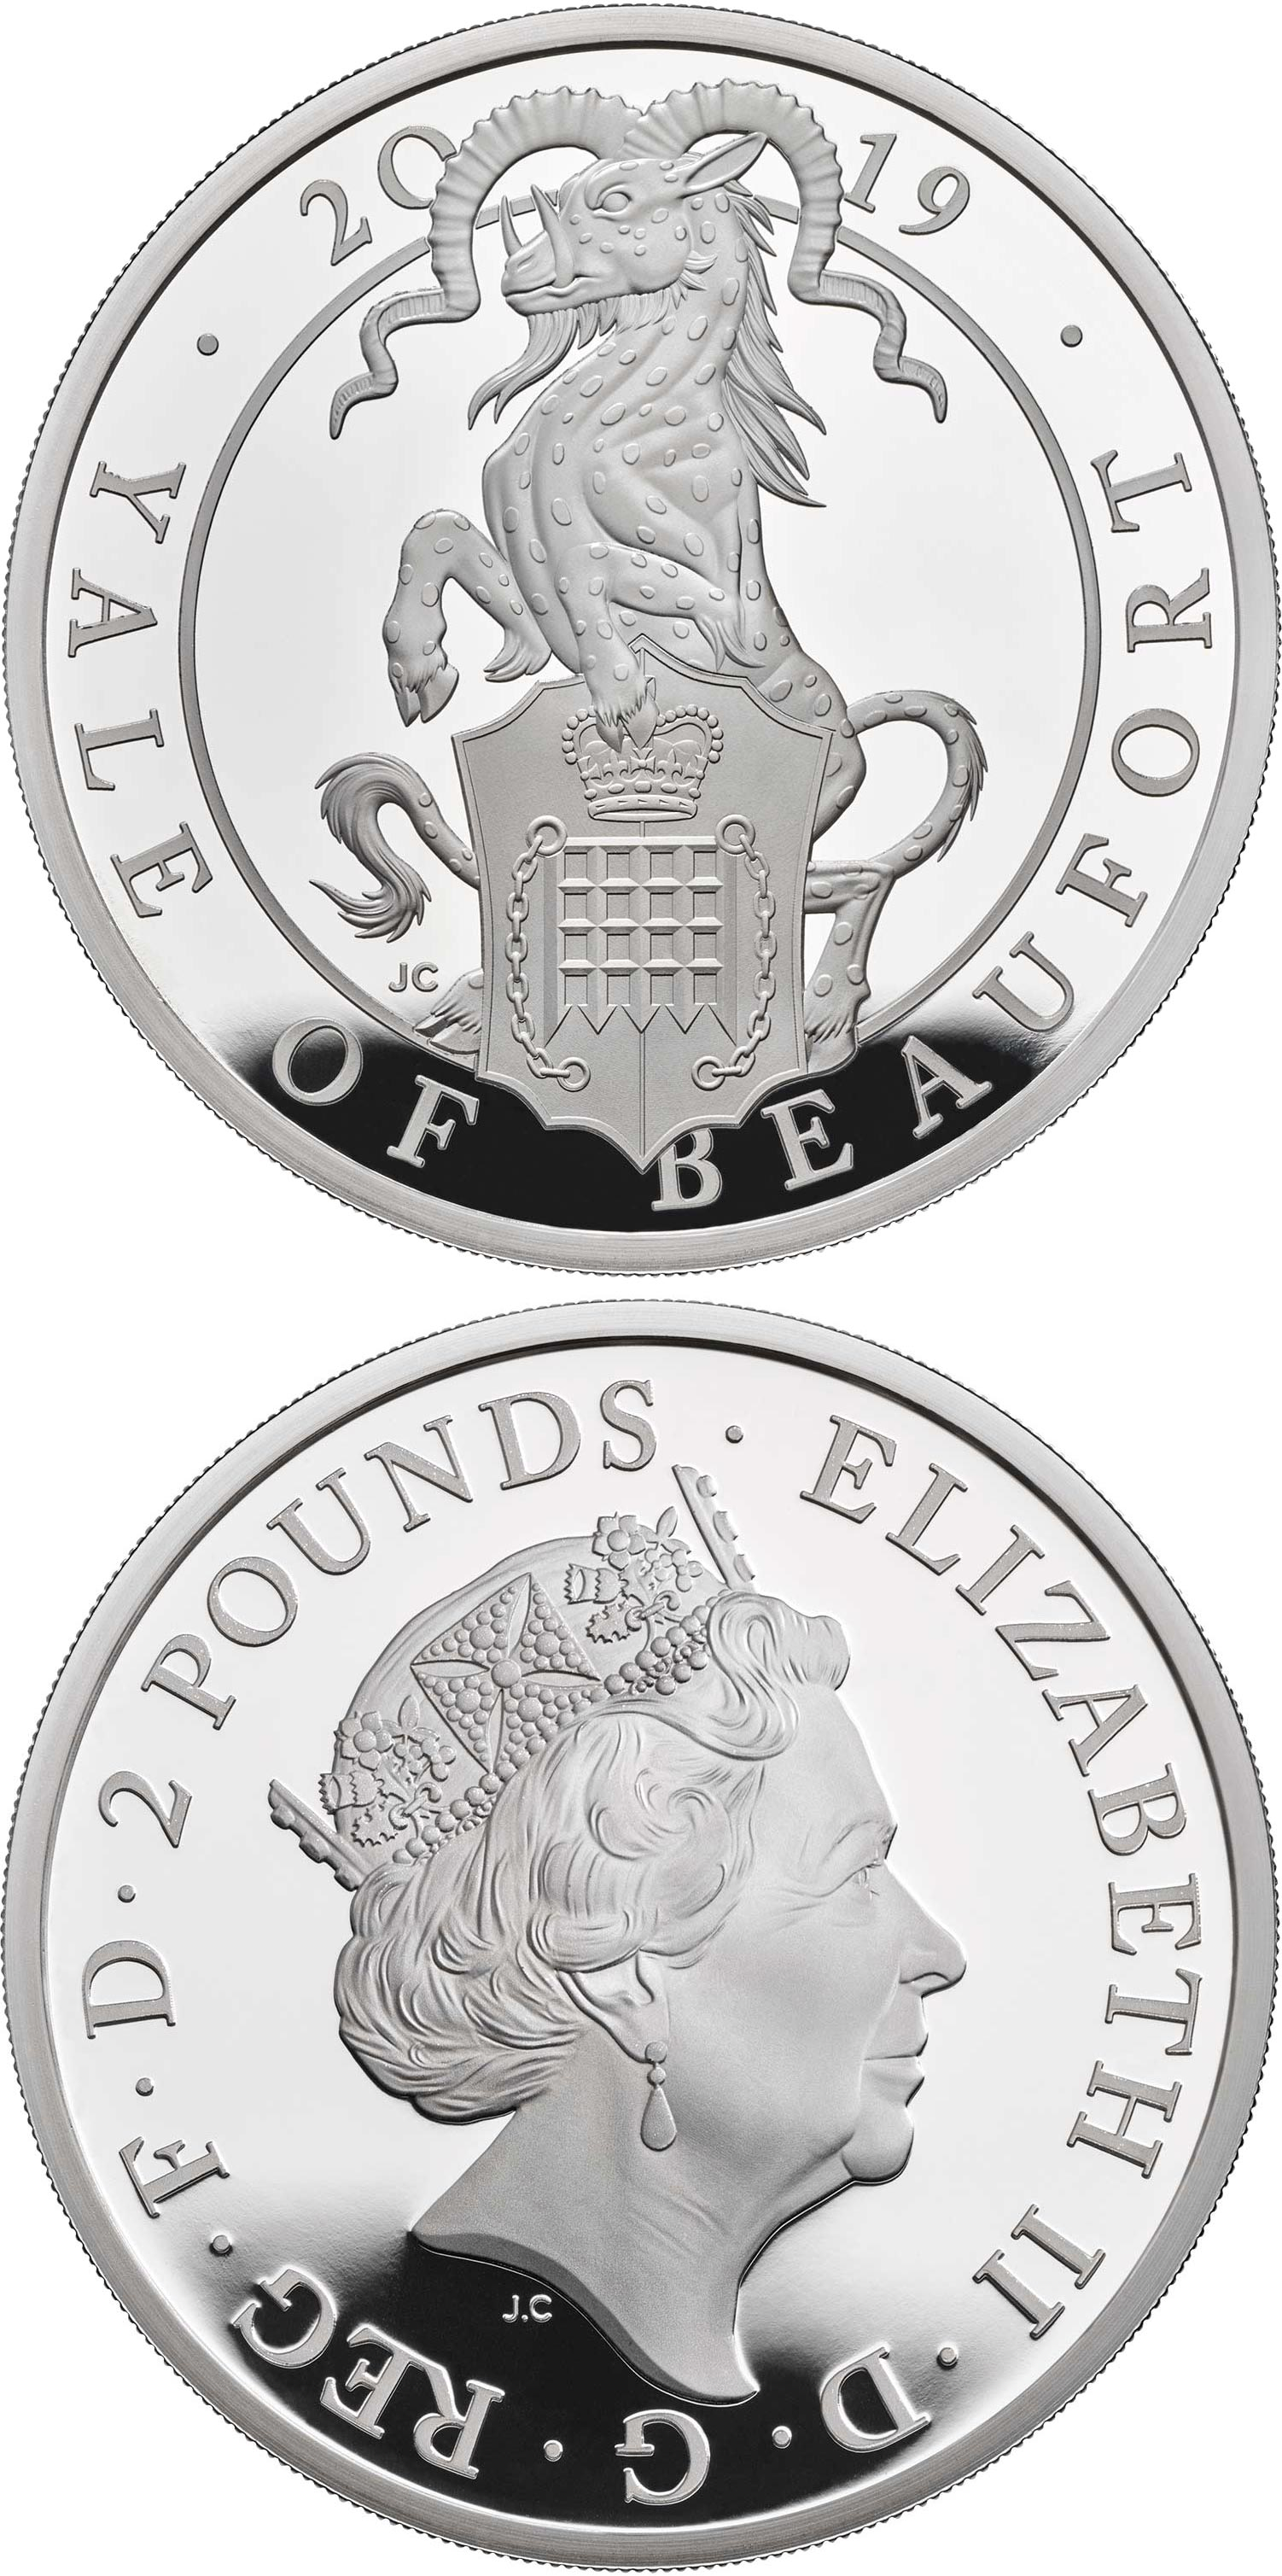 Image of 2 pounds coin - The Yale of Beaufort | United Kingdom 2019.  The Silver coin is of Proof quality.